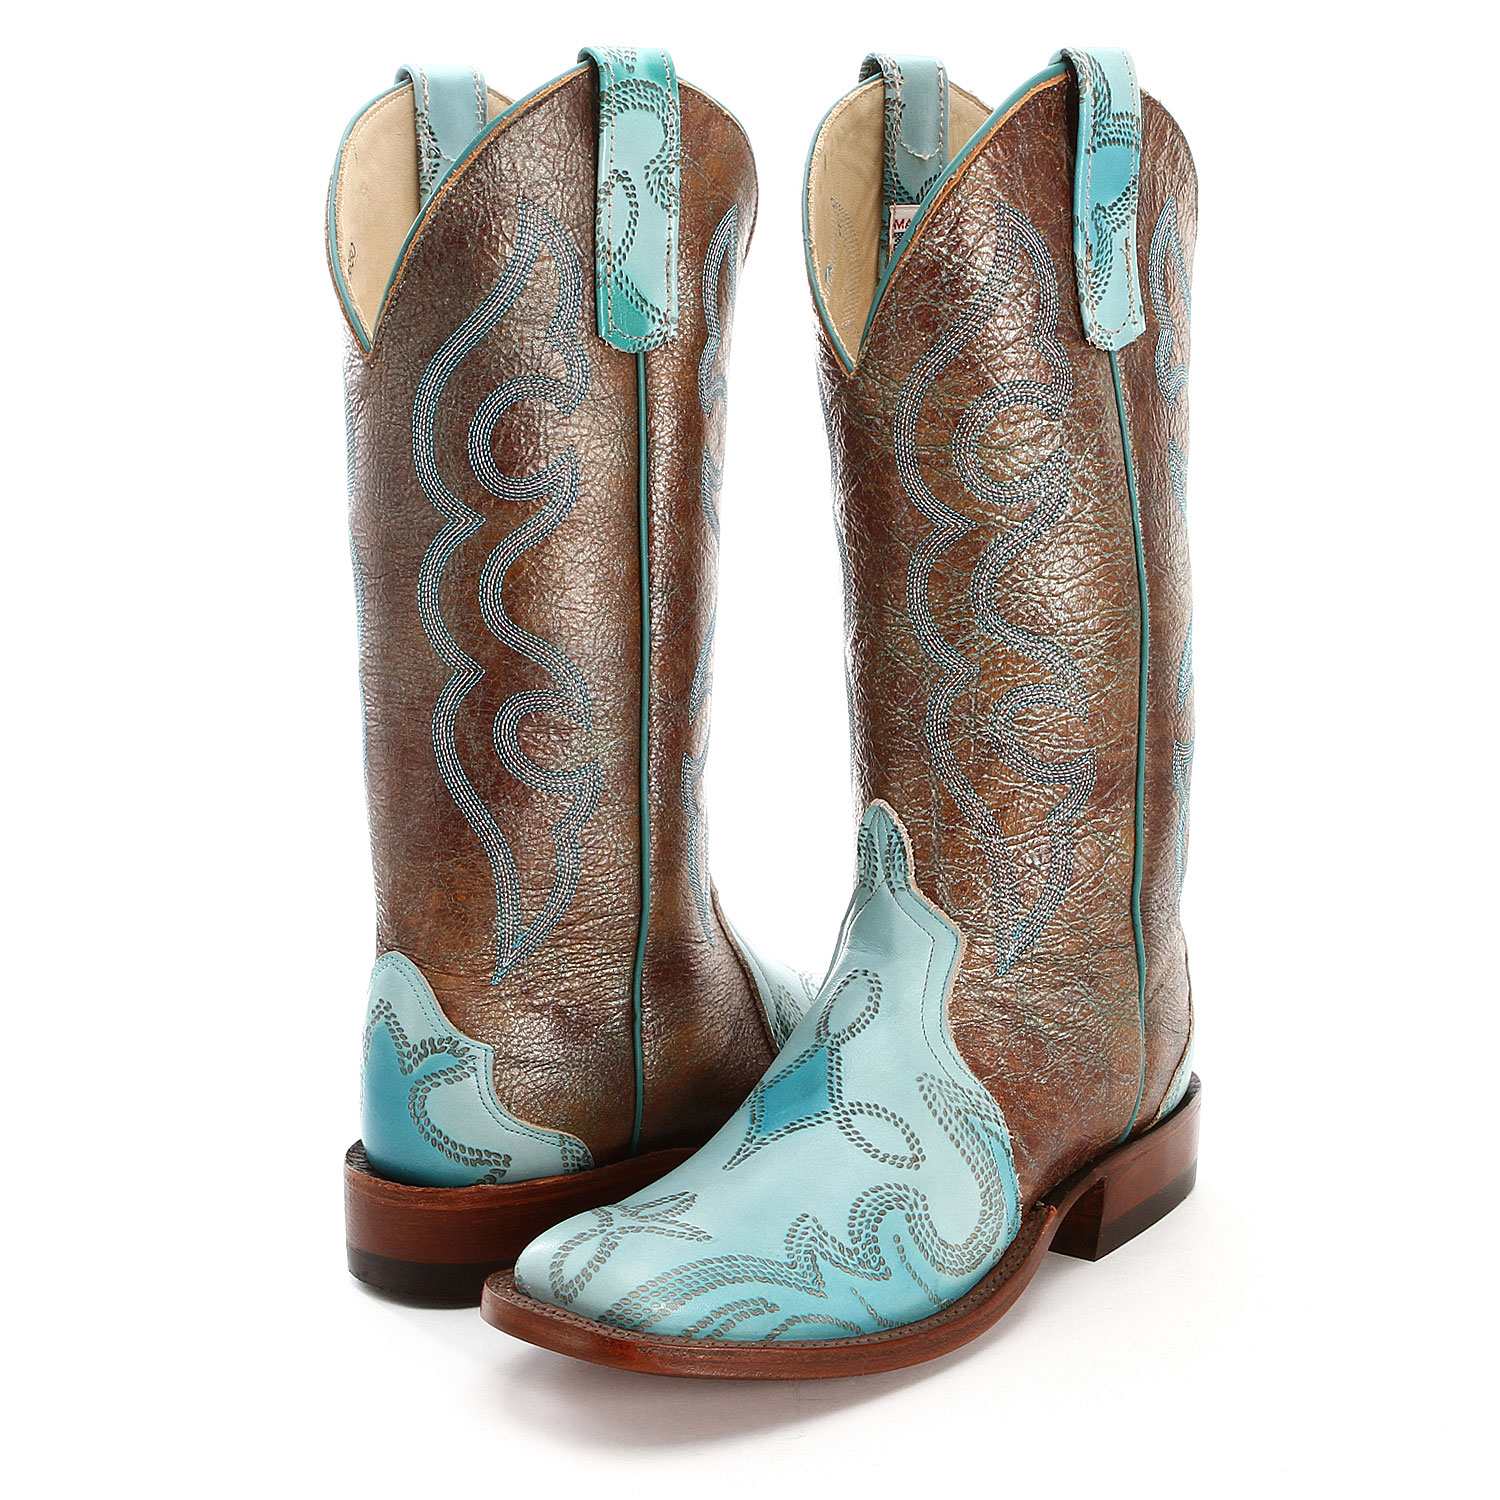 Blue Cowgirl Boots YpUxO8oU